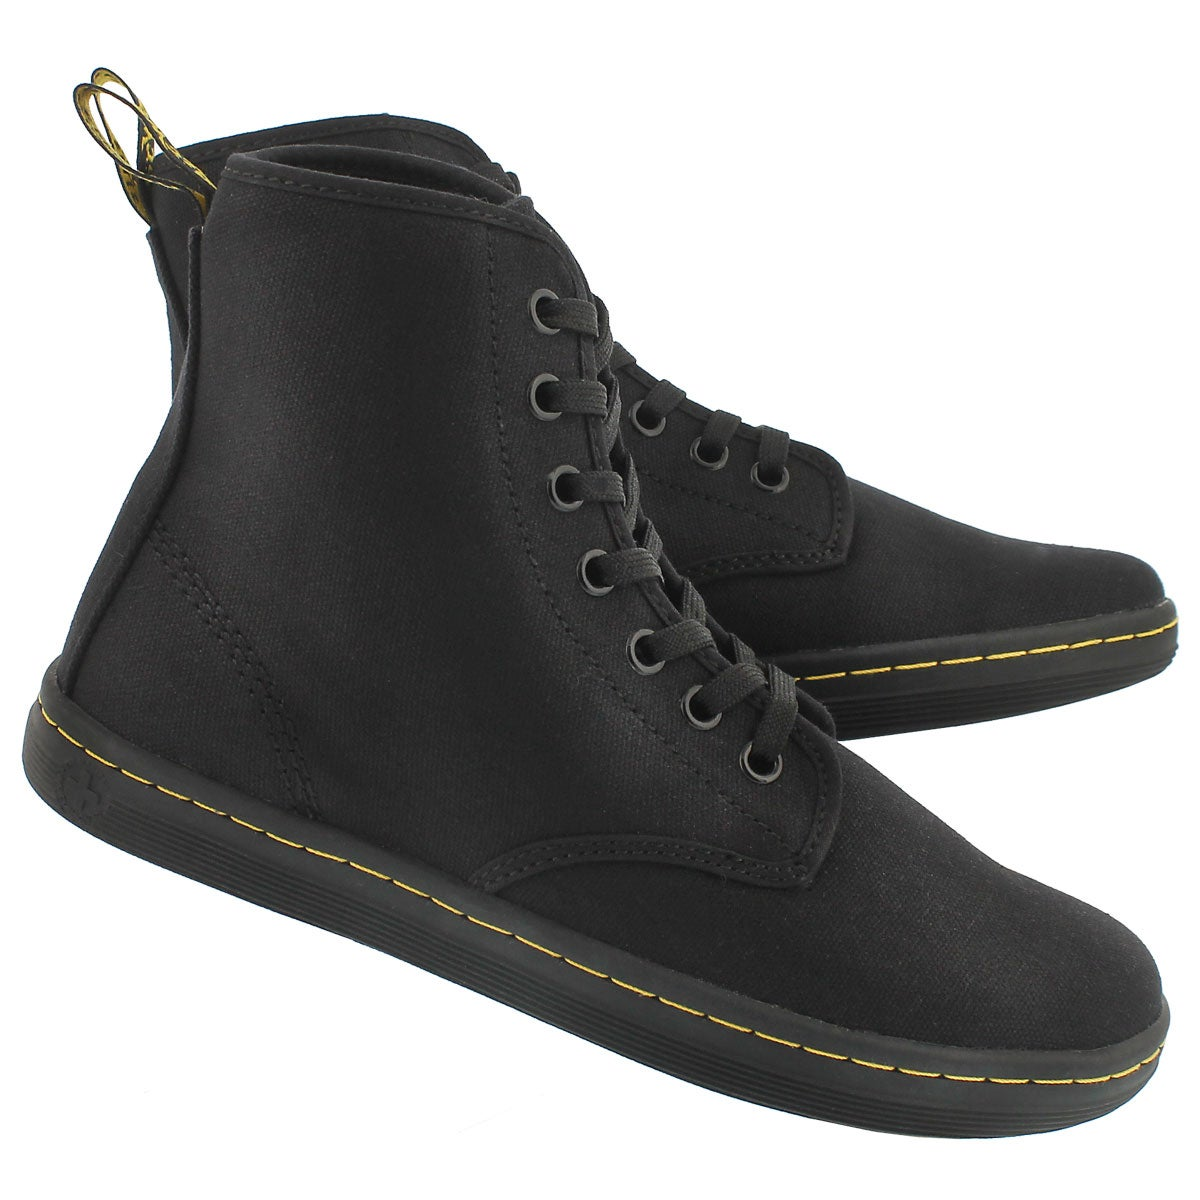 Lds Shoreditch black canvas low boot